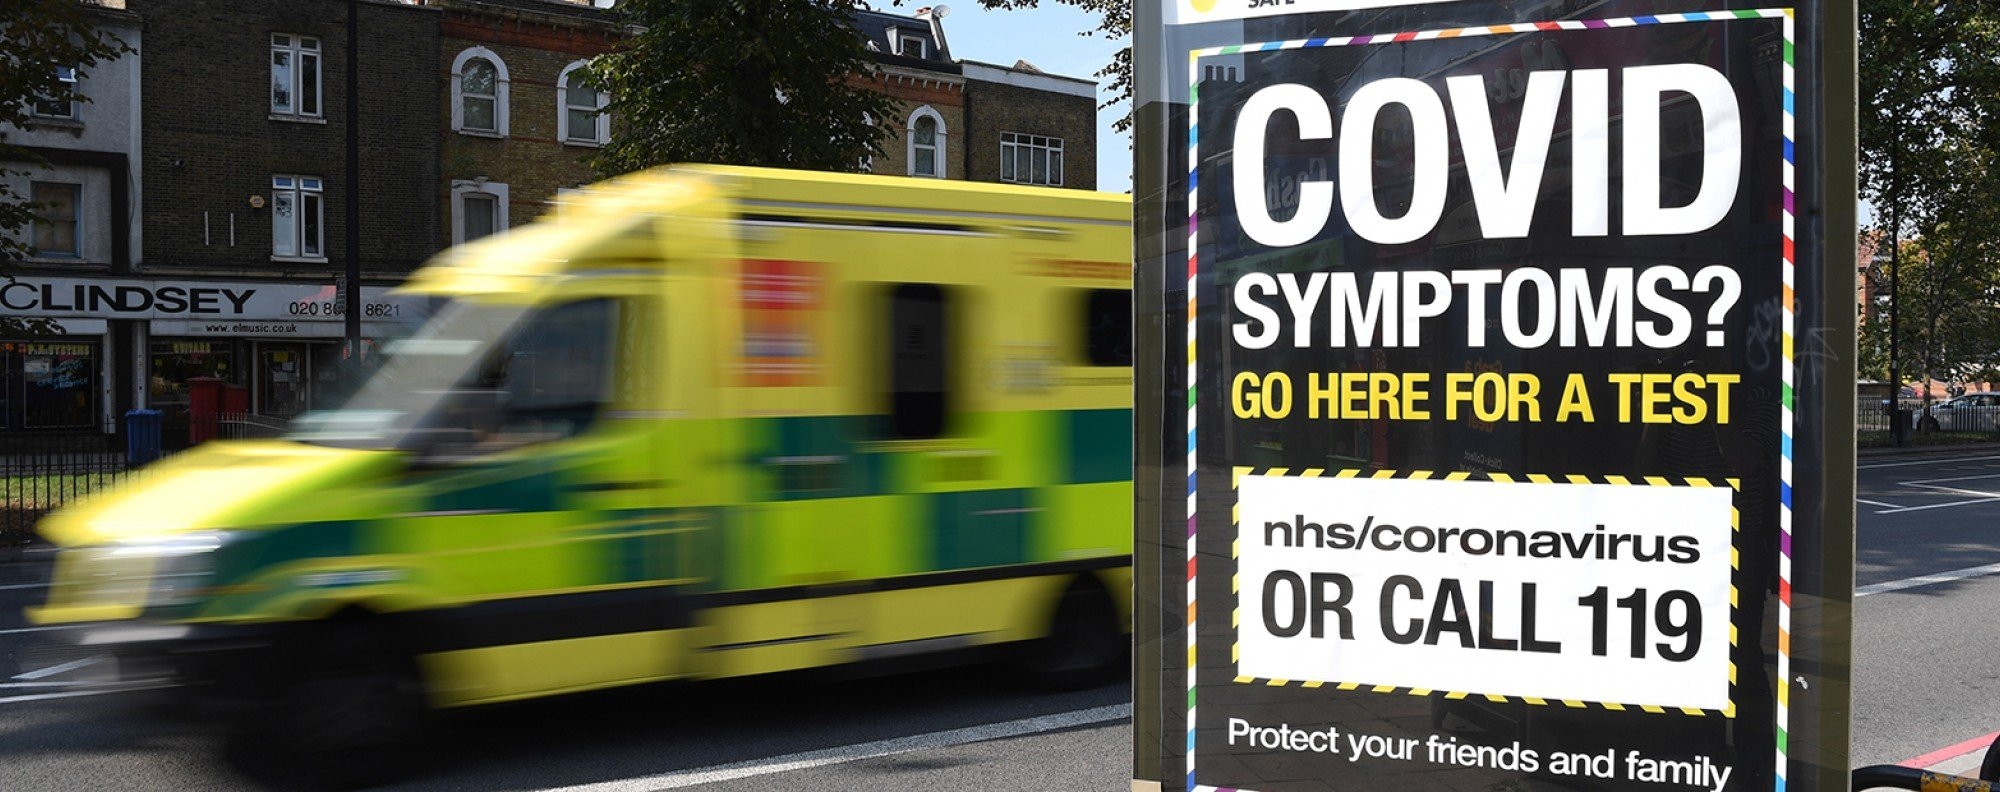 An ambulance drives past a Covid-19 helpline sign in south London. Photo: EPA-EFE